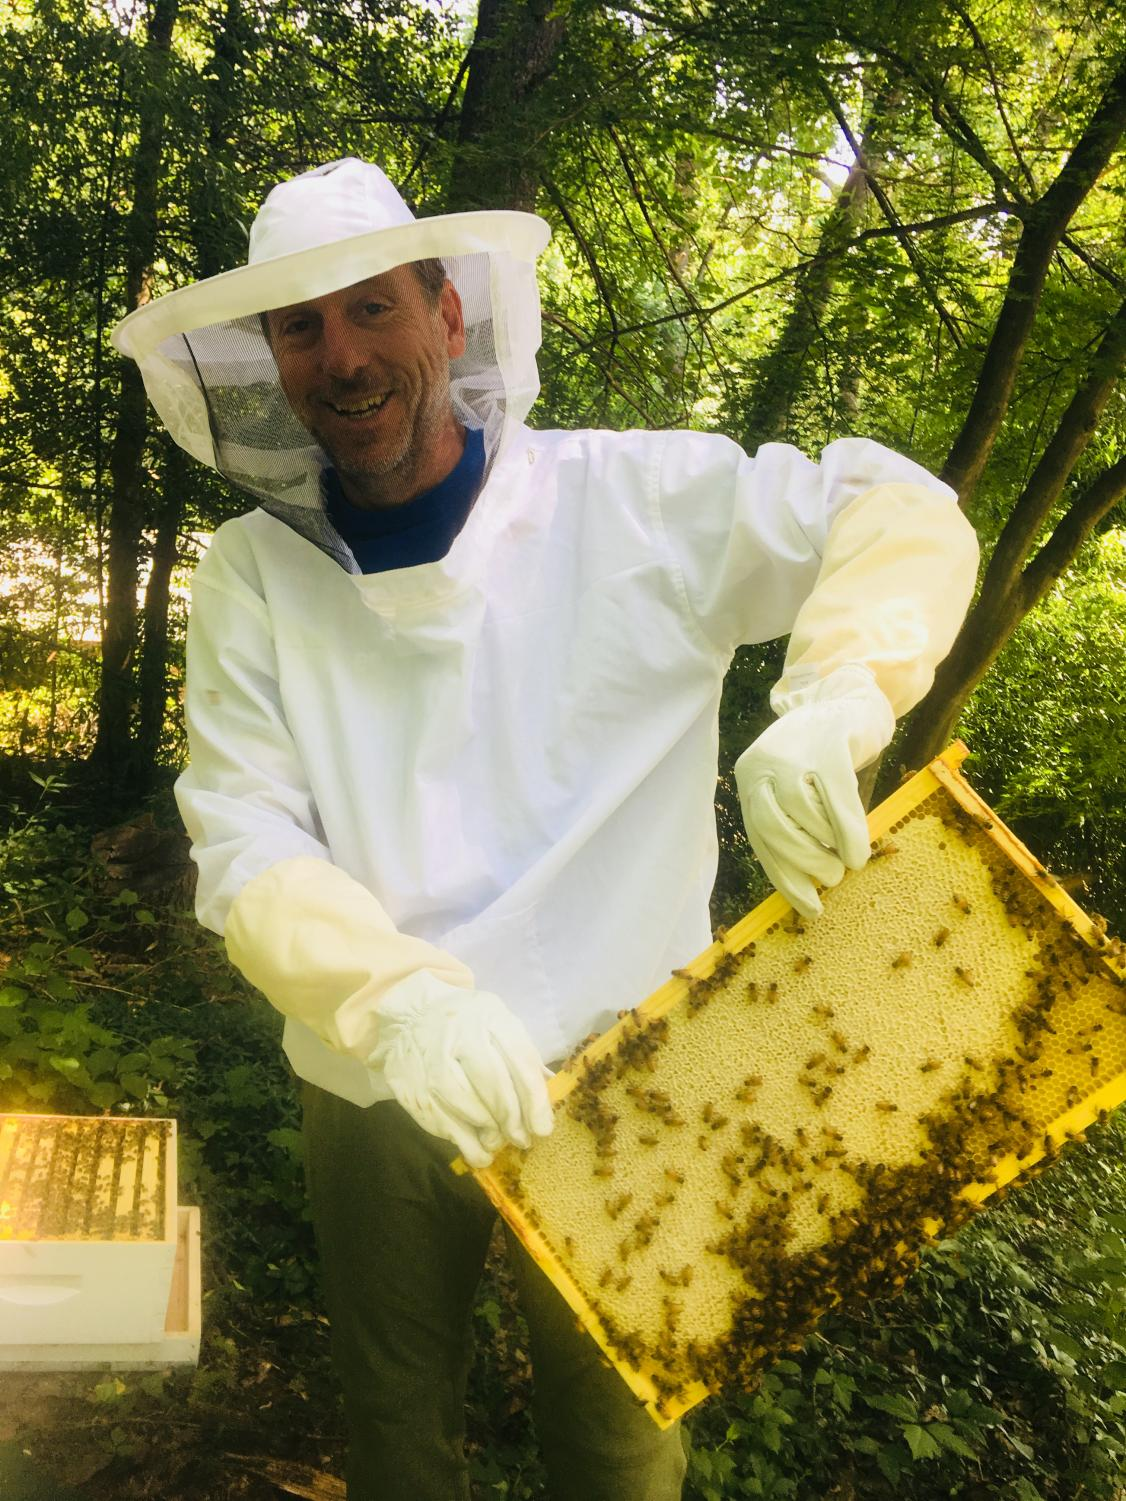 Whitman parent Dan Stoner holds up a tray from his beehive. Each tray holds wax honeycomb that bees fill with honey each spring.